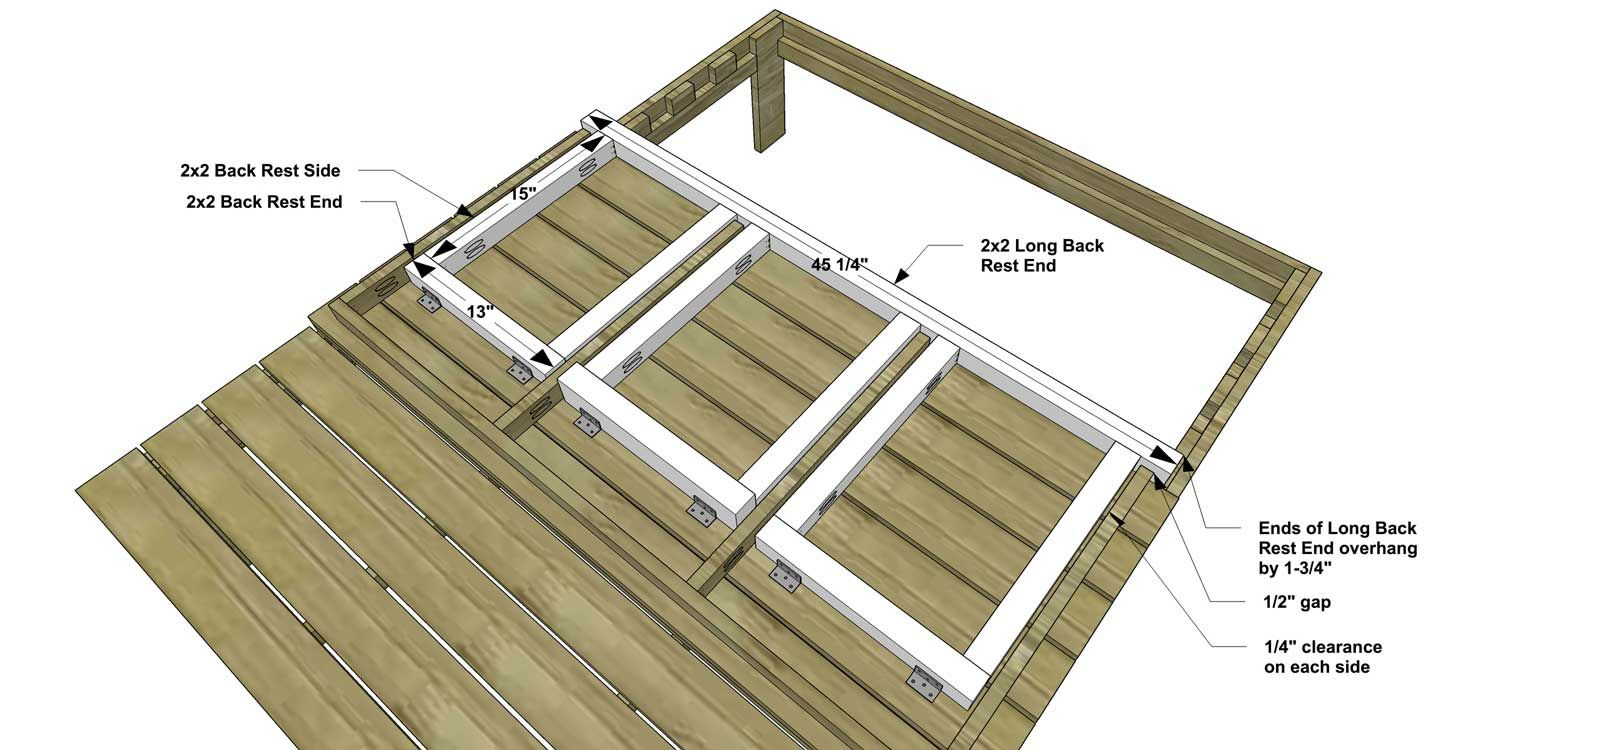 You Can Build This! Easy DIY Plans from The Design Confidential Free DIY Furniture Plans // How to Build A Kid's Double Chaise + Awning via @thedesconf